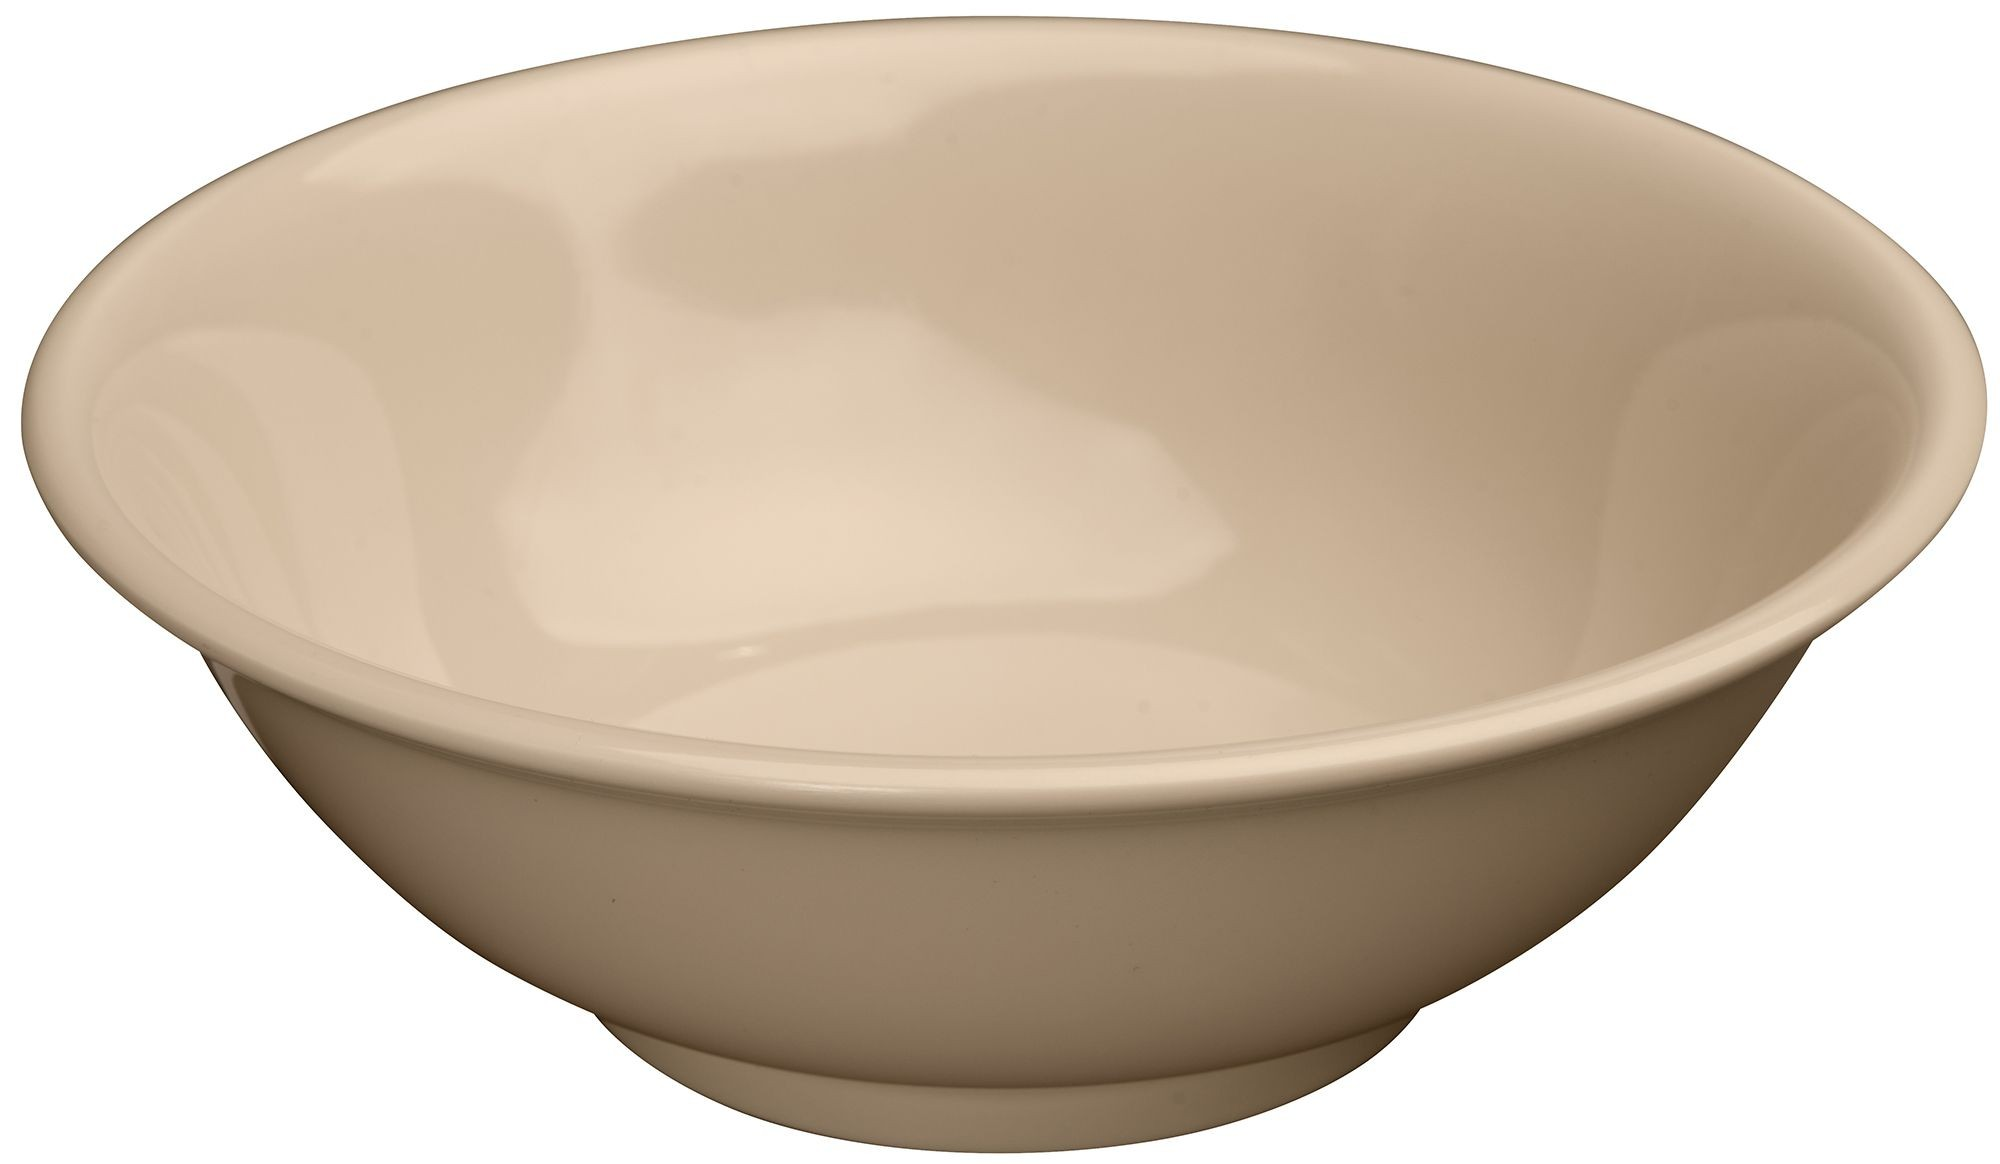 Winco MMB-32 Tan Melamine Rimless Bowl 32 oz.